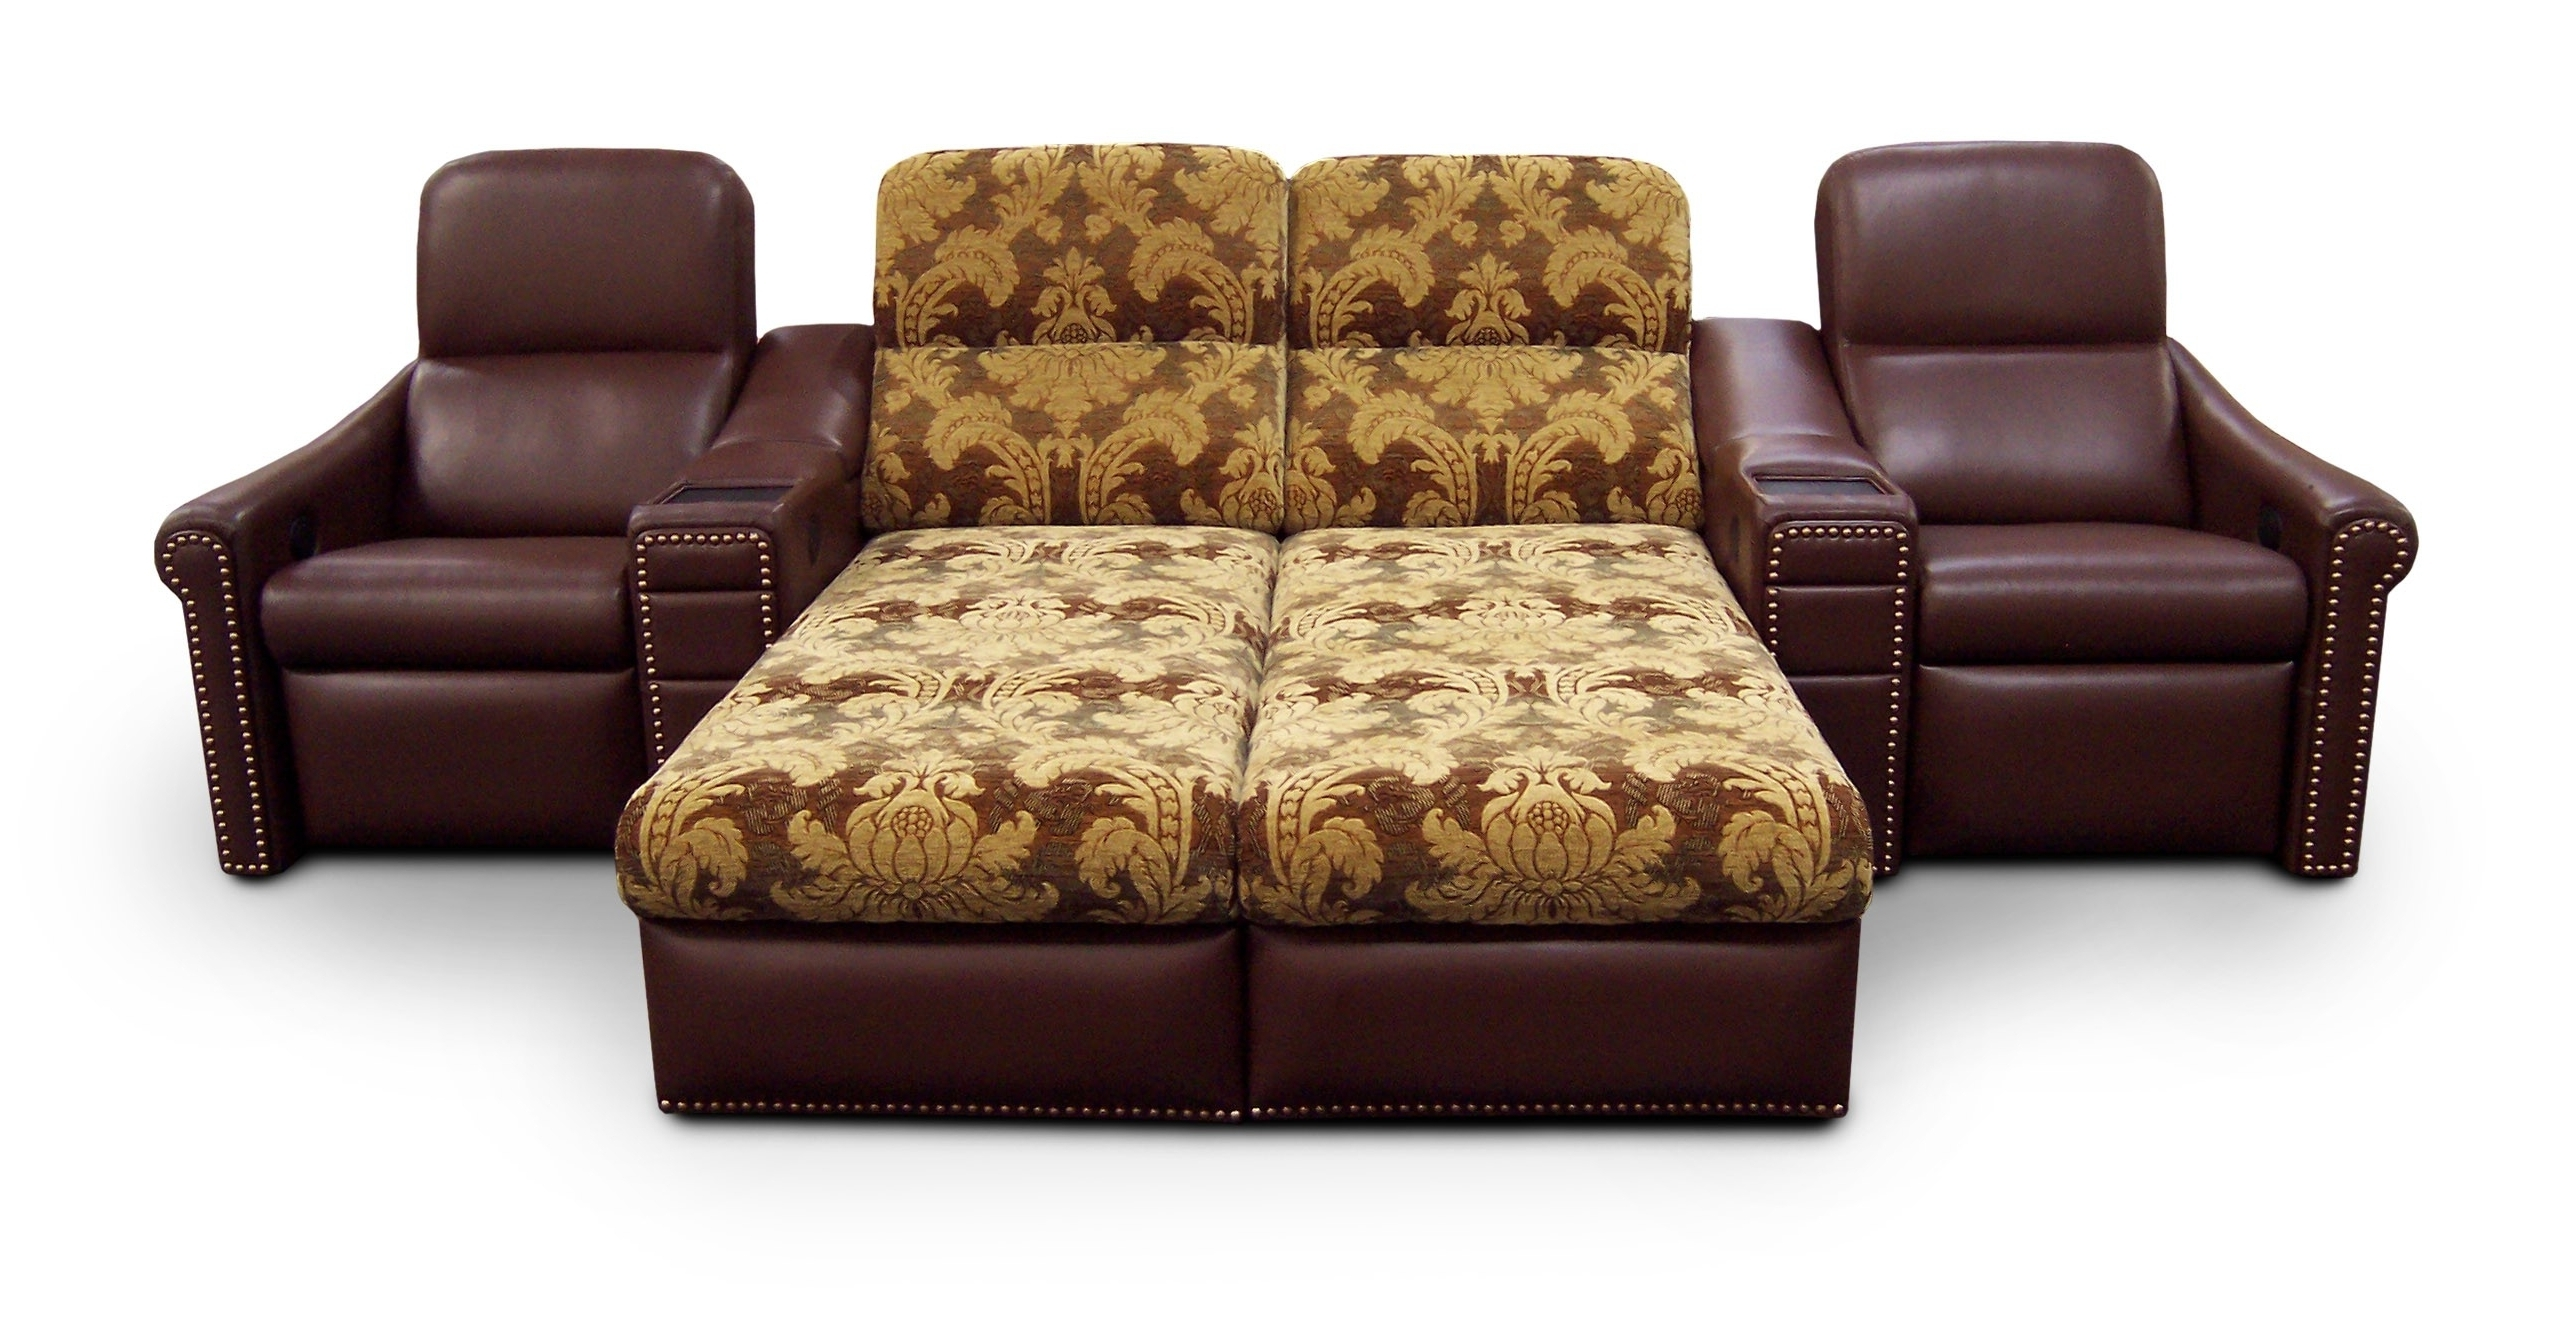 Widely Used Oversized Chaise Lounge Sofas With Double Chaise Lounge Sofa Decorators Systems – Surripui (View 13 of 15)